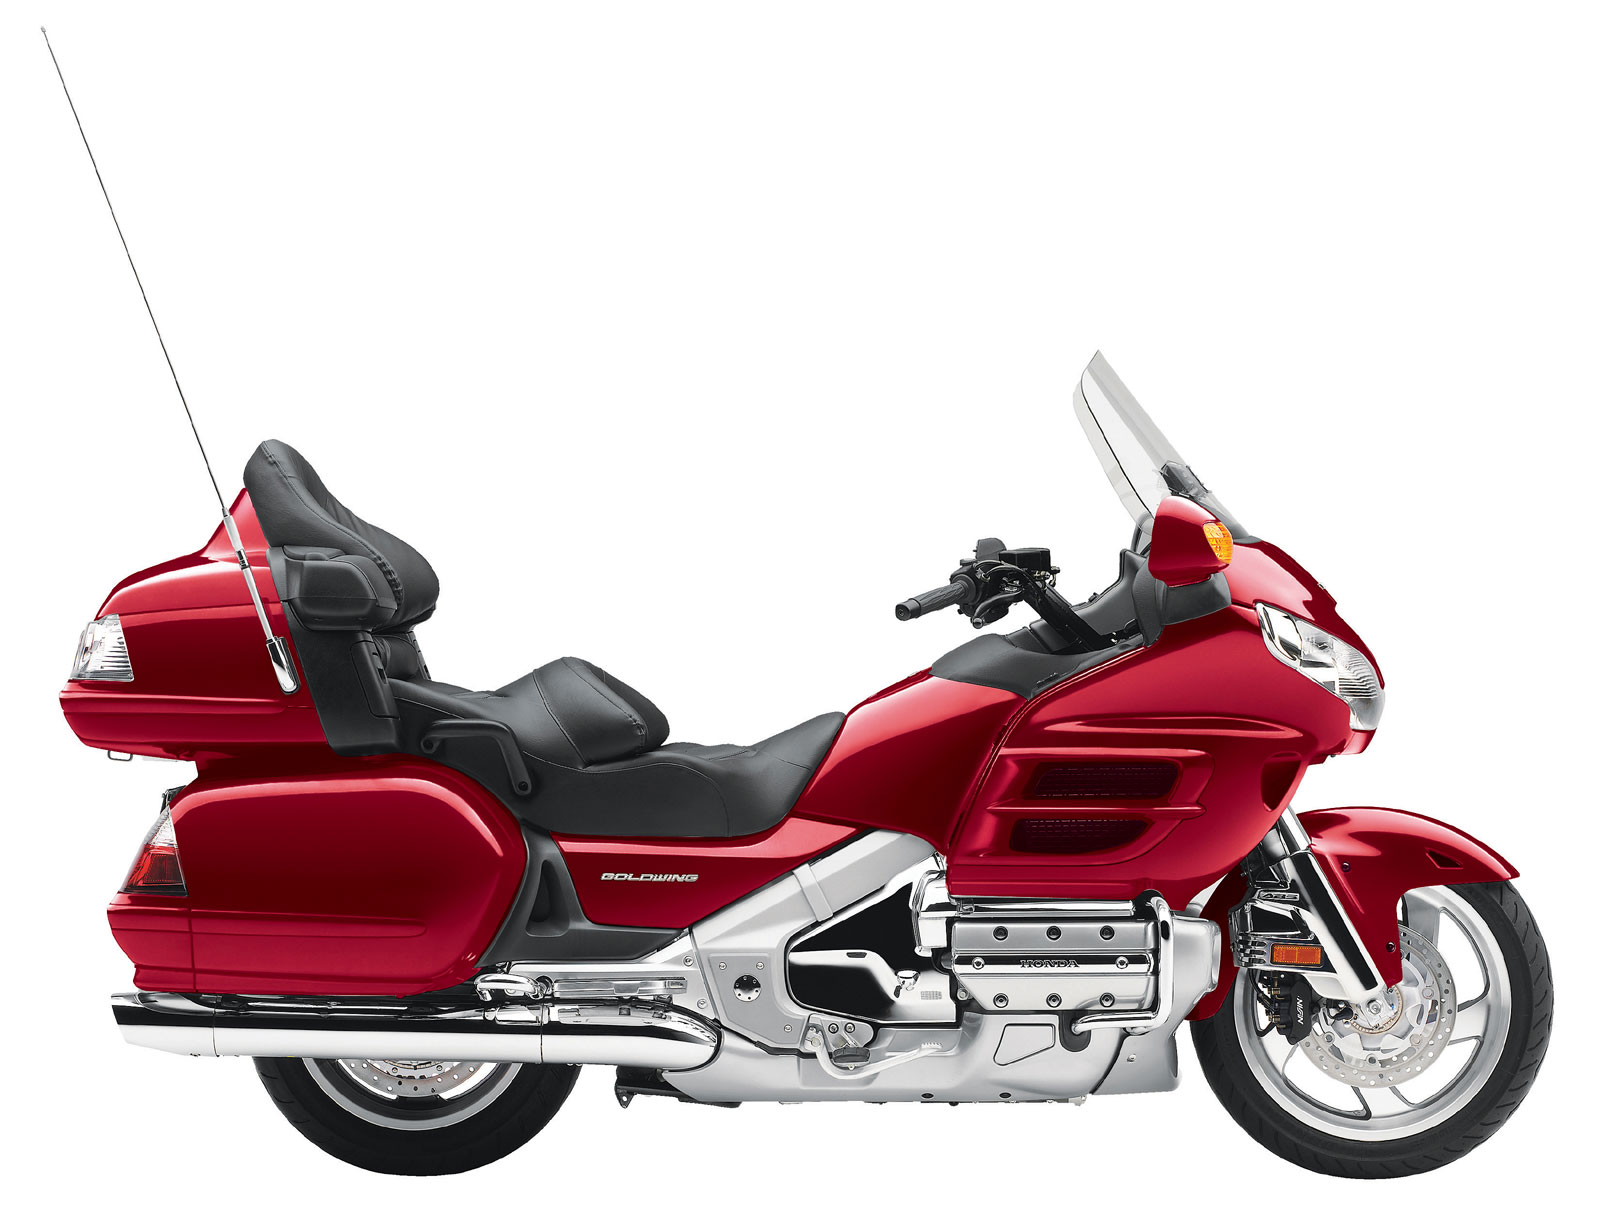 Honda GL 1800 Gold Wing 2012 wallpapers #142243